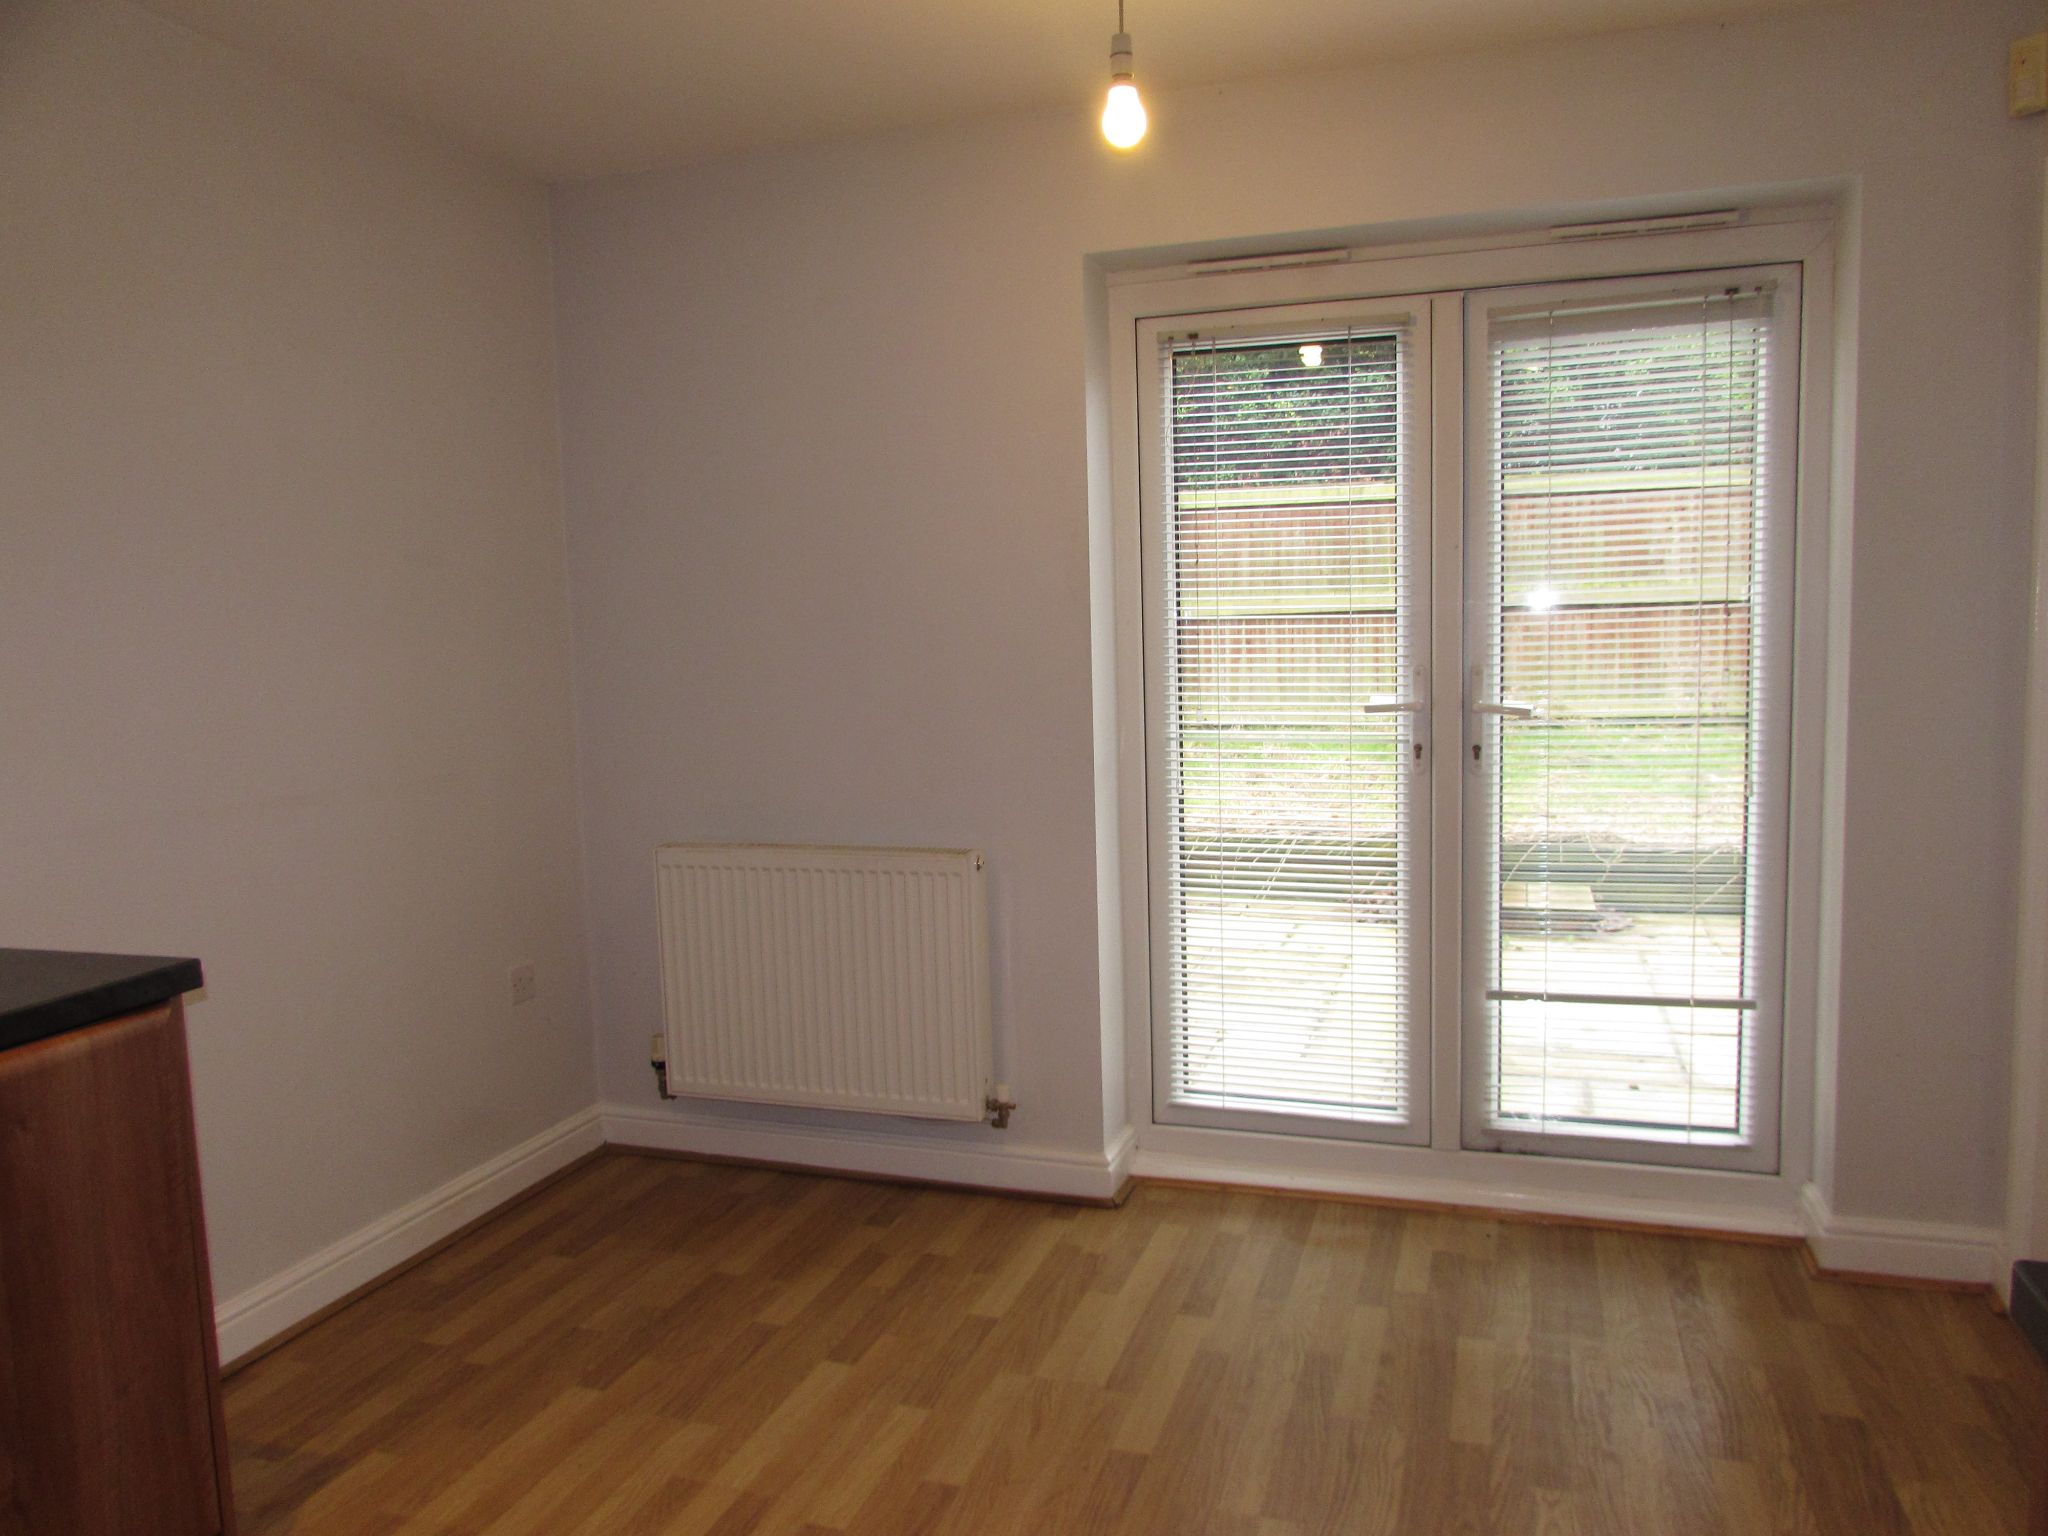 2 Bedroom Mews House To Rent - Dining area spcae